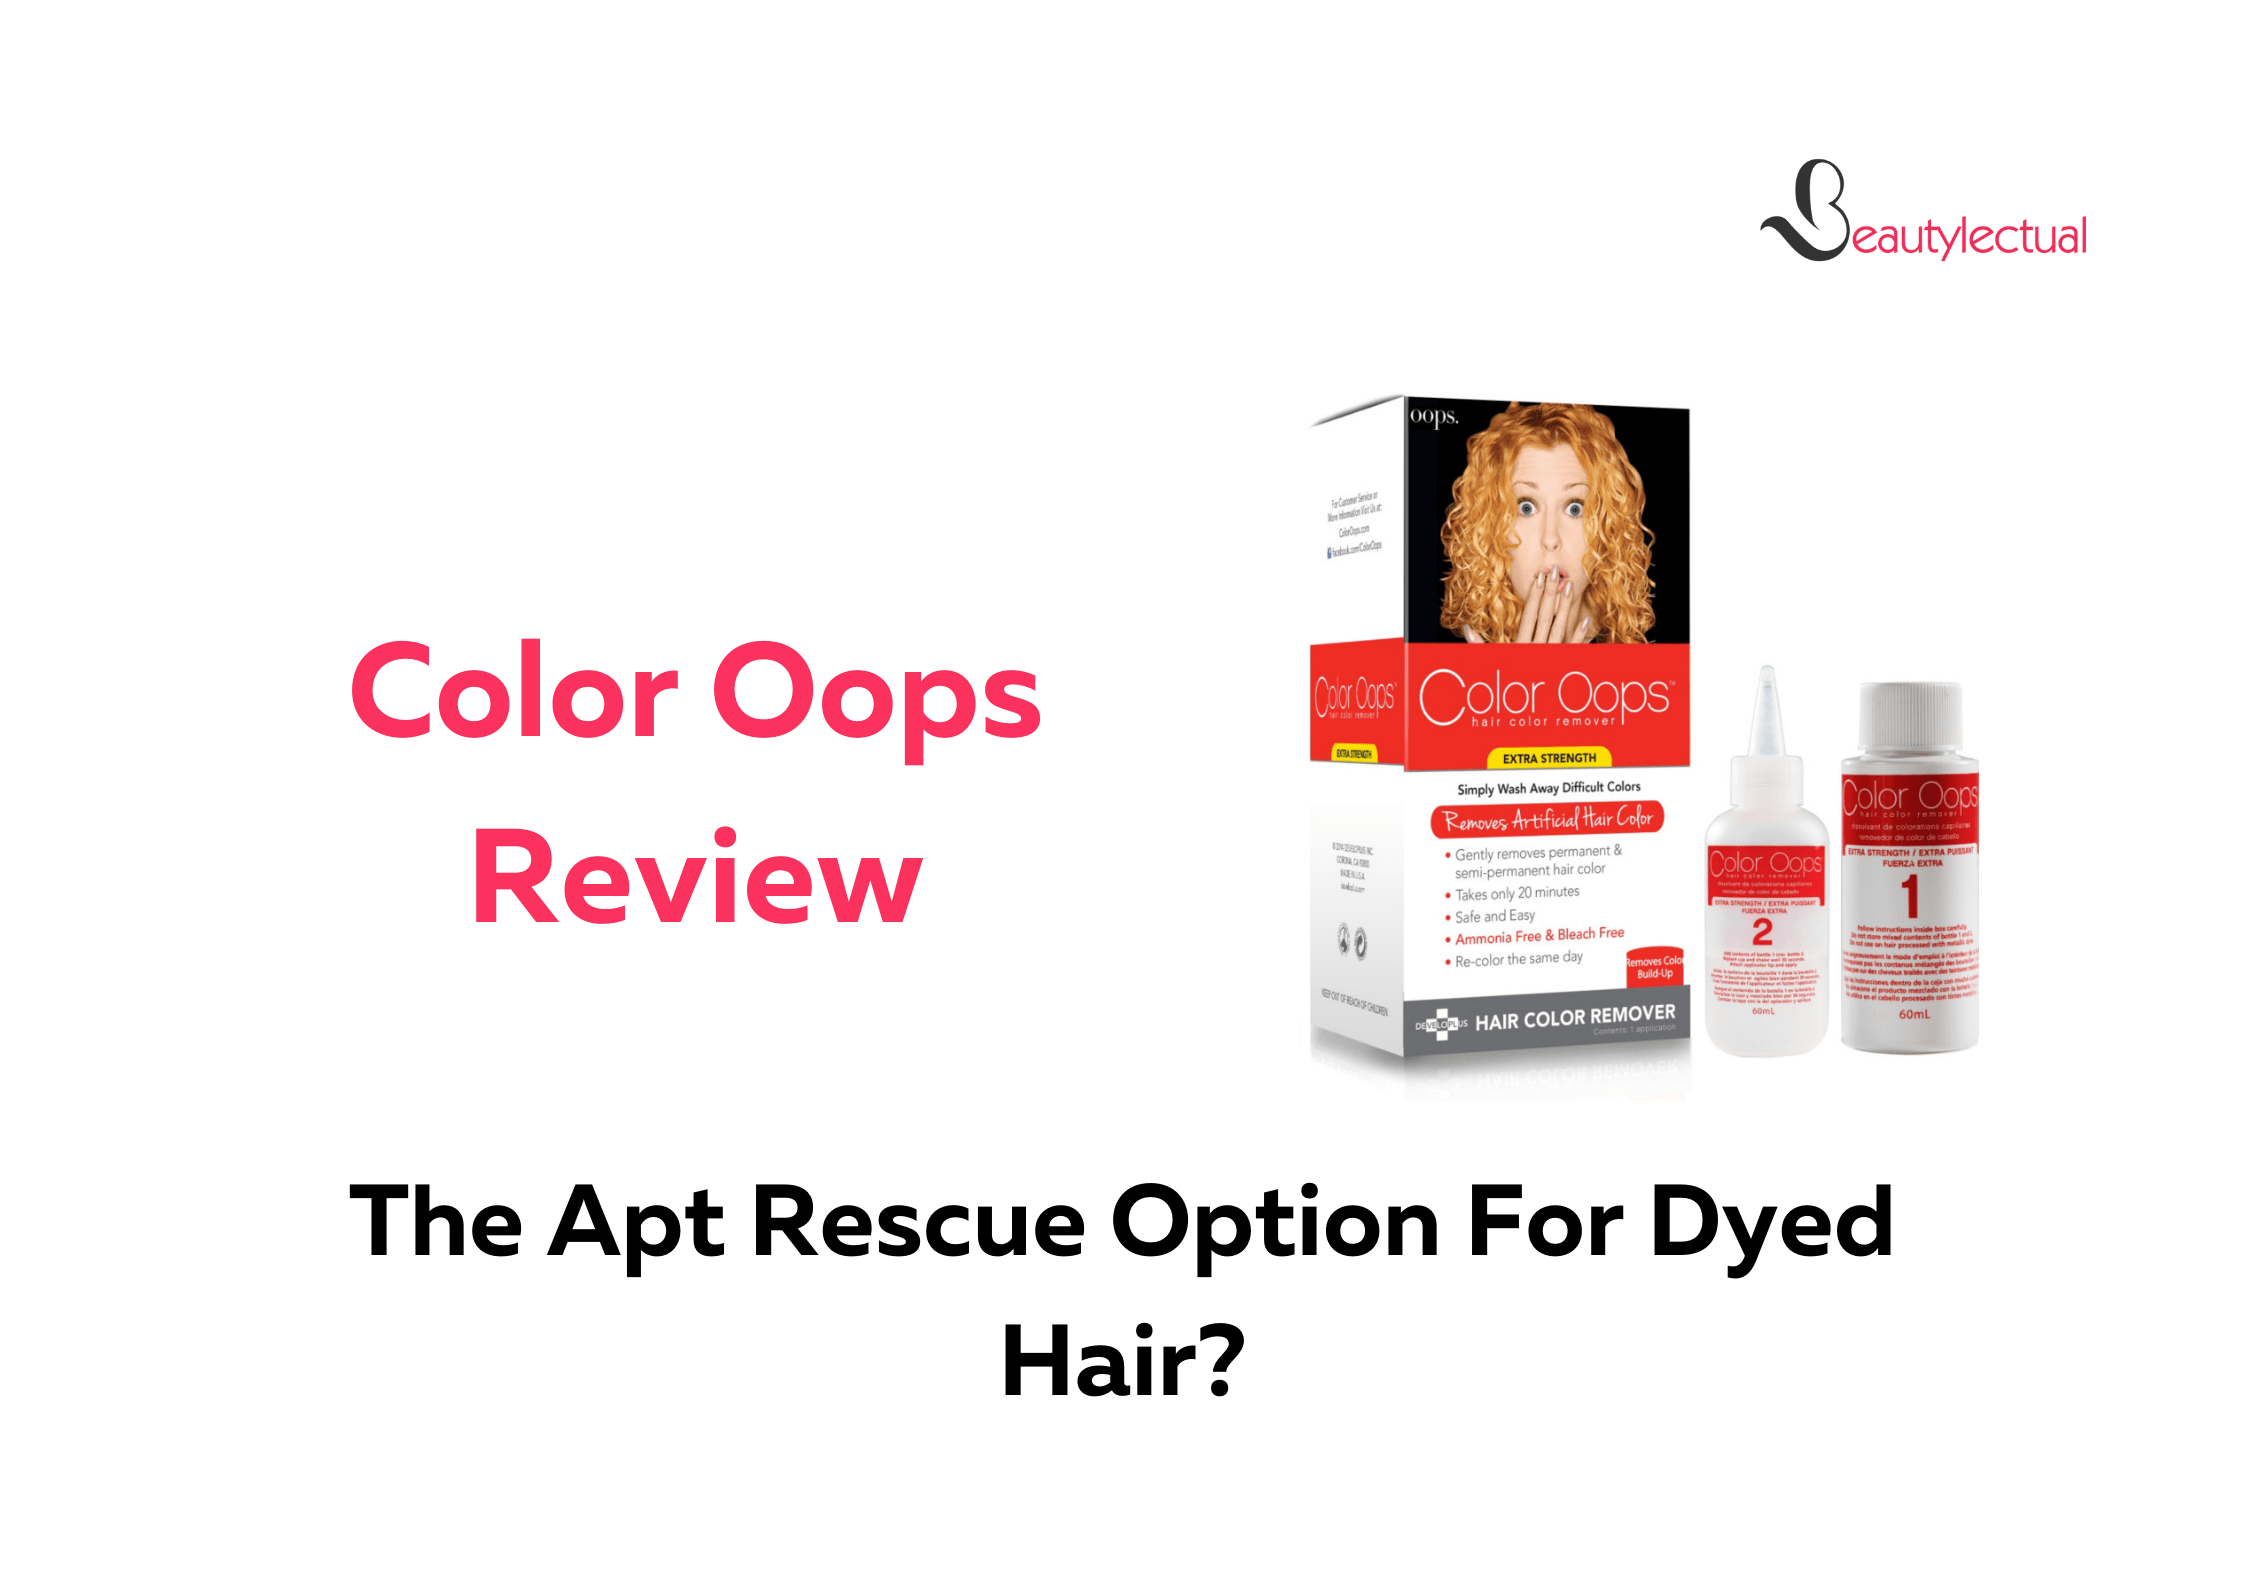 Color Oops Review